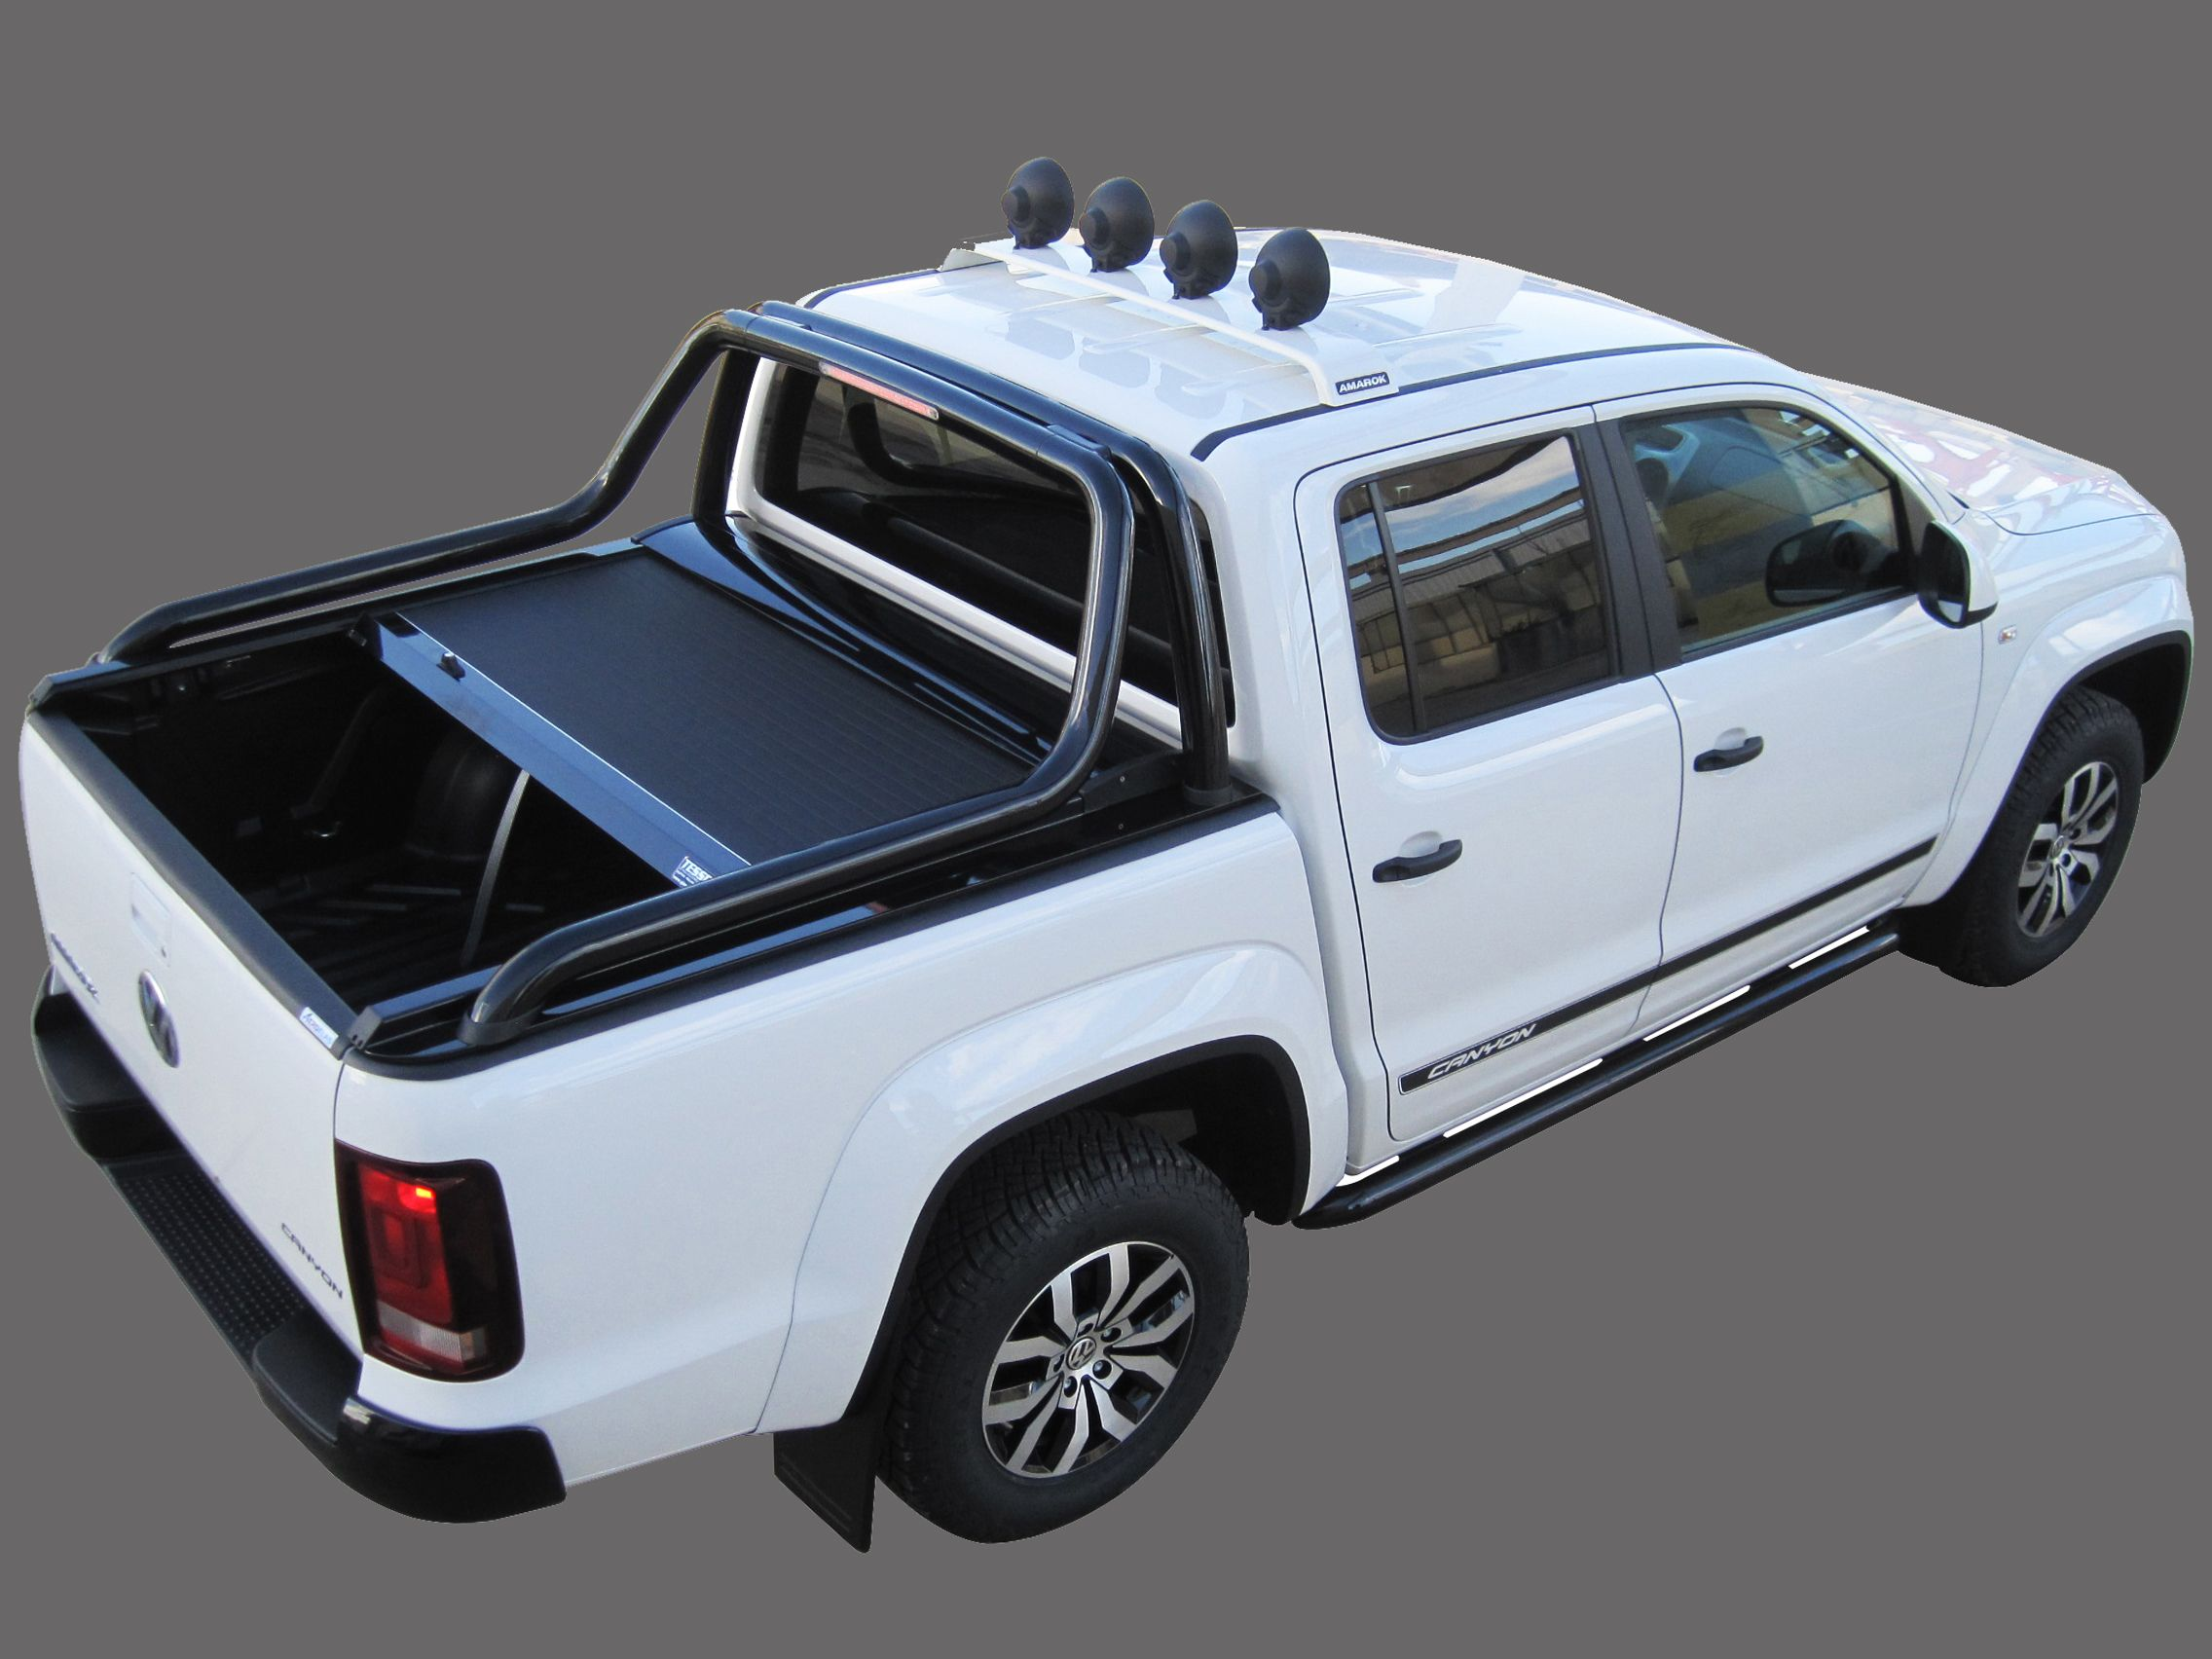 Pin By Carlos Guzman On 4x4 Vw Amarok Volkswagen 4x4 Accessories